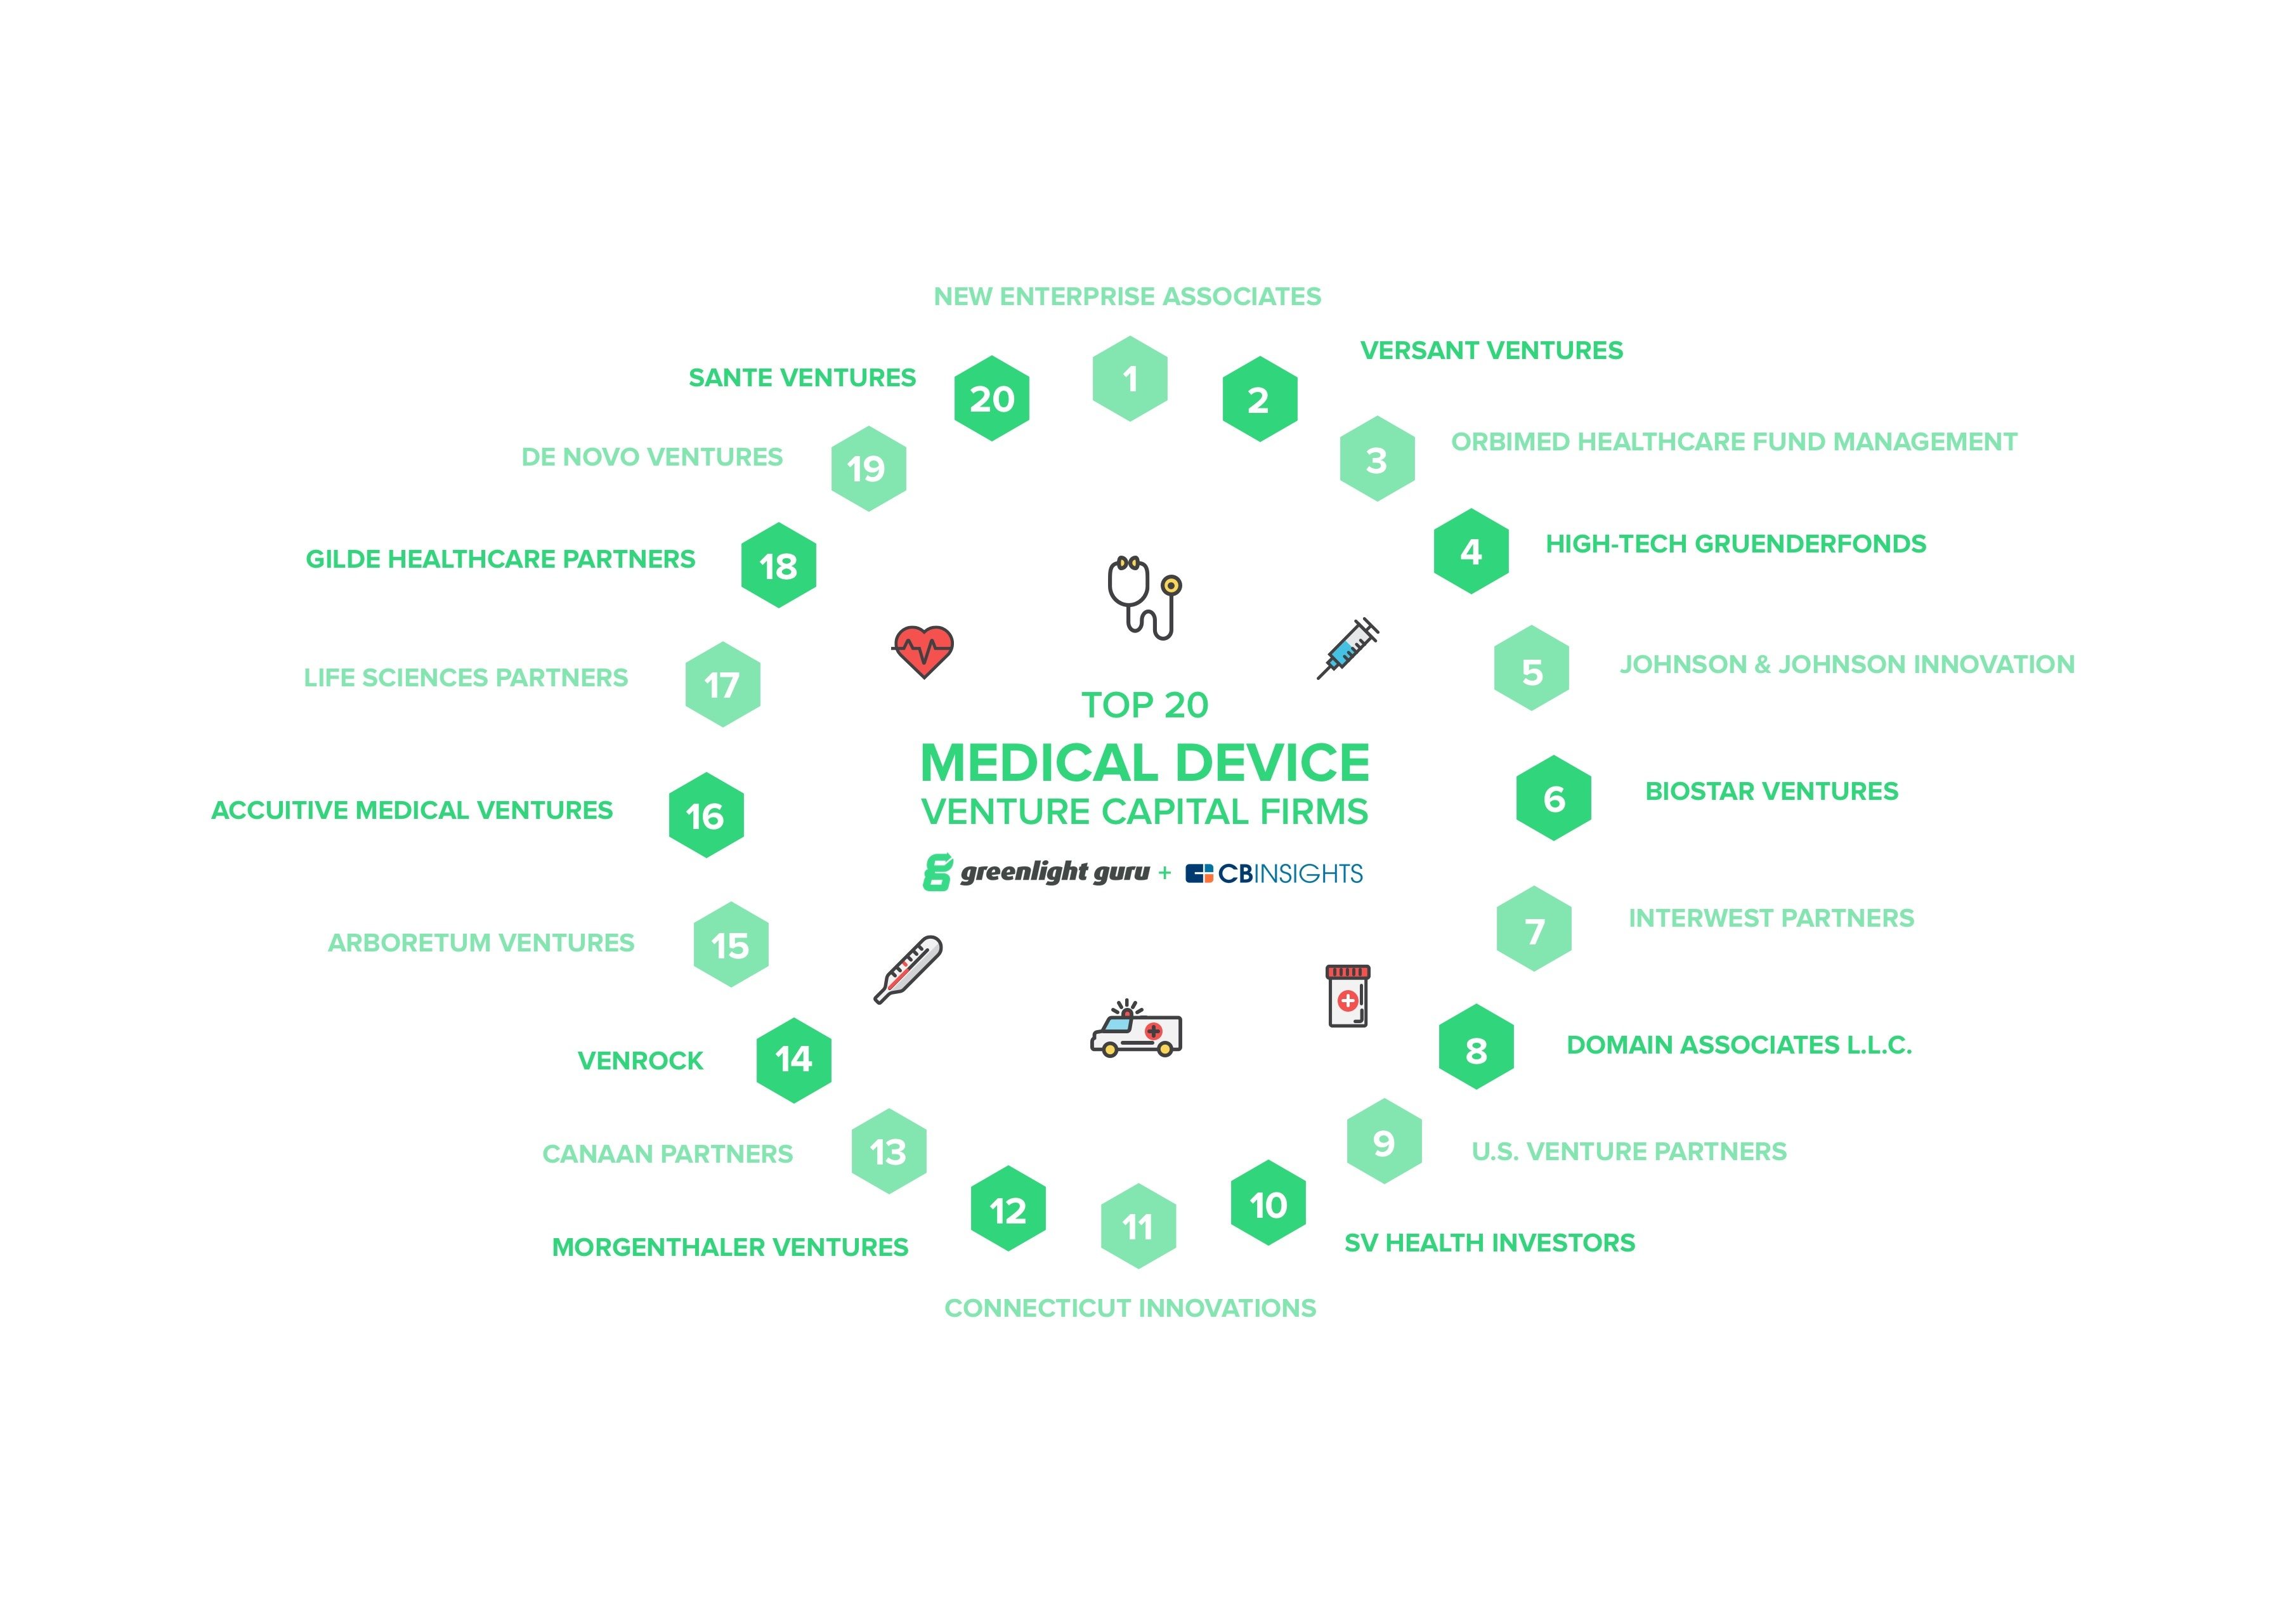 Top 20 Medical Device Venture Capital Firms